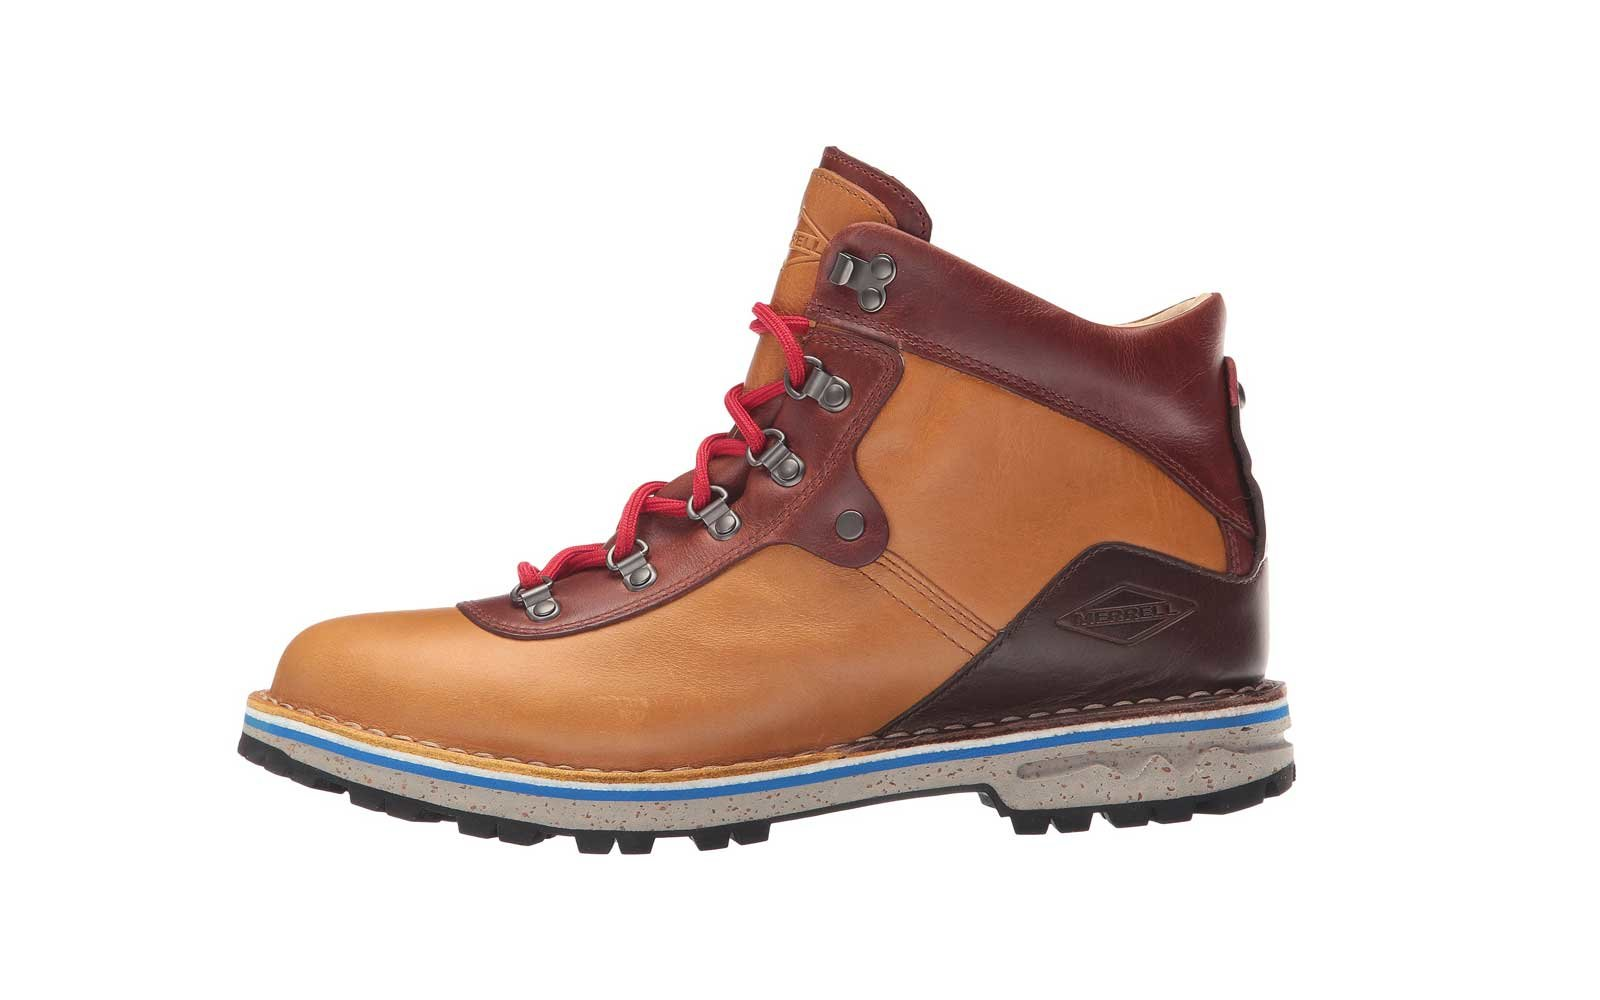 cabe20902ce59 The Most Comfortable Walking Boots